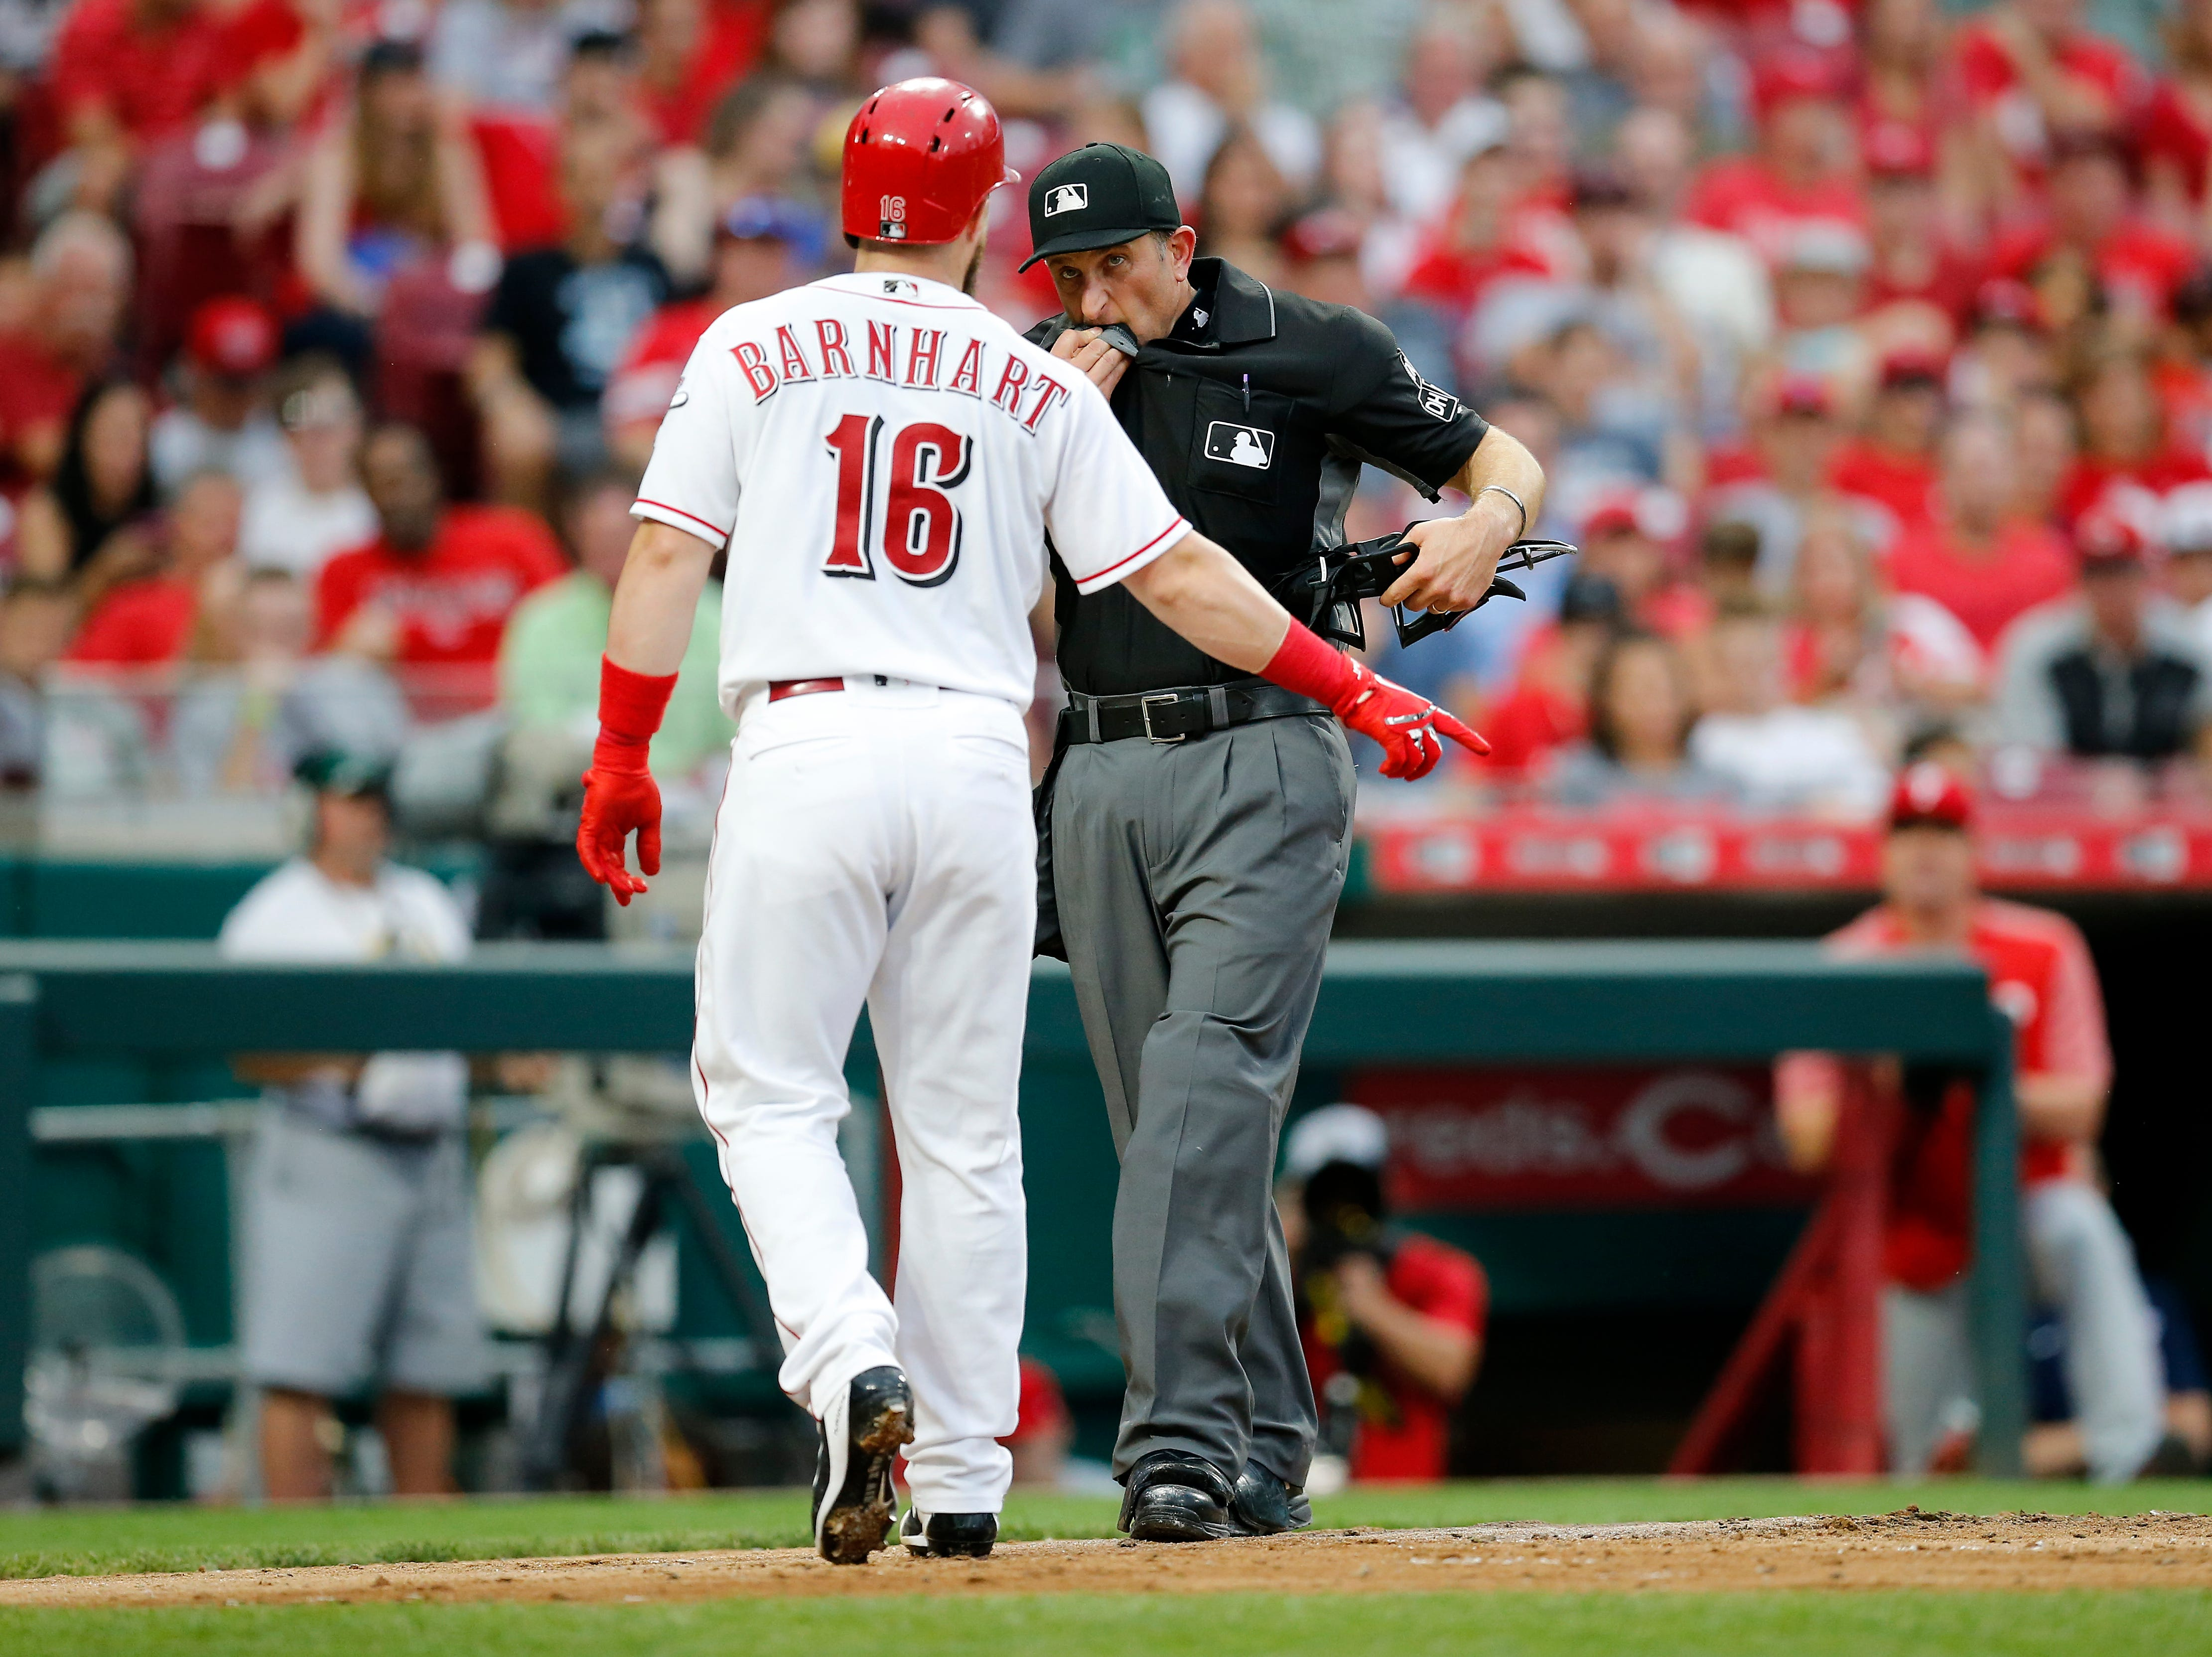 Cincinnati Reds catcher Tucker Barnhart (16) argues with umpire Chris Guccione (68) on a called third strike in the bottom of the second inning of the MLB National League game between the Cincinnati Reds and the Philadelphia Phillies at Great American Ball Park in downtown Cincinnati on Thursday, July 26, 2018. The Reds trailed 4-2 after three innings.